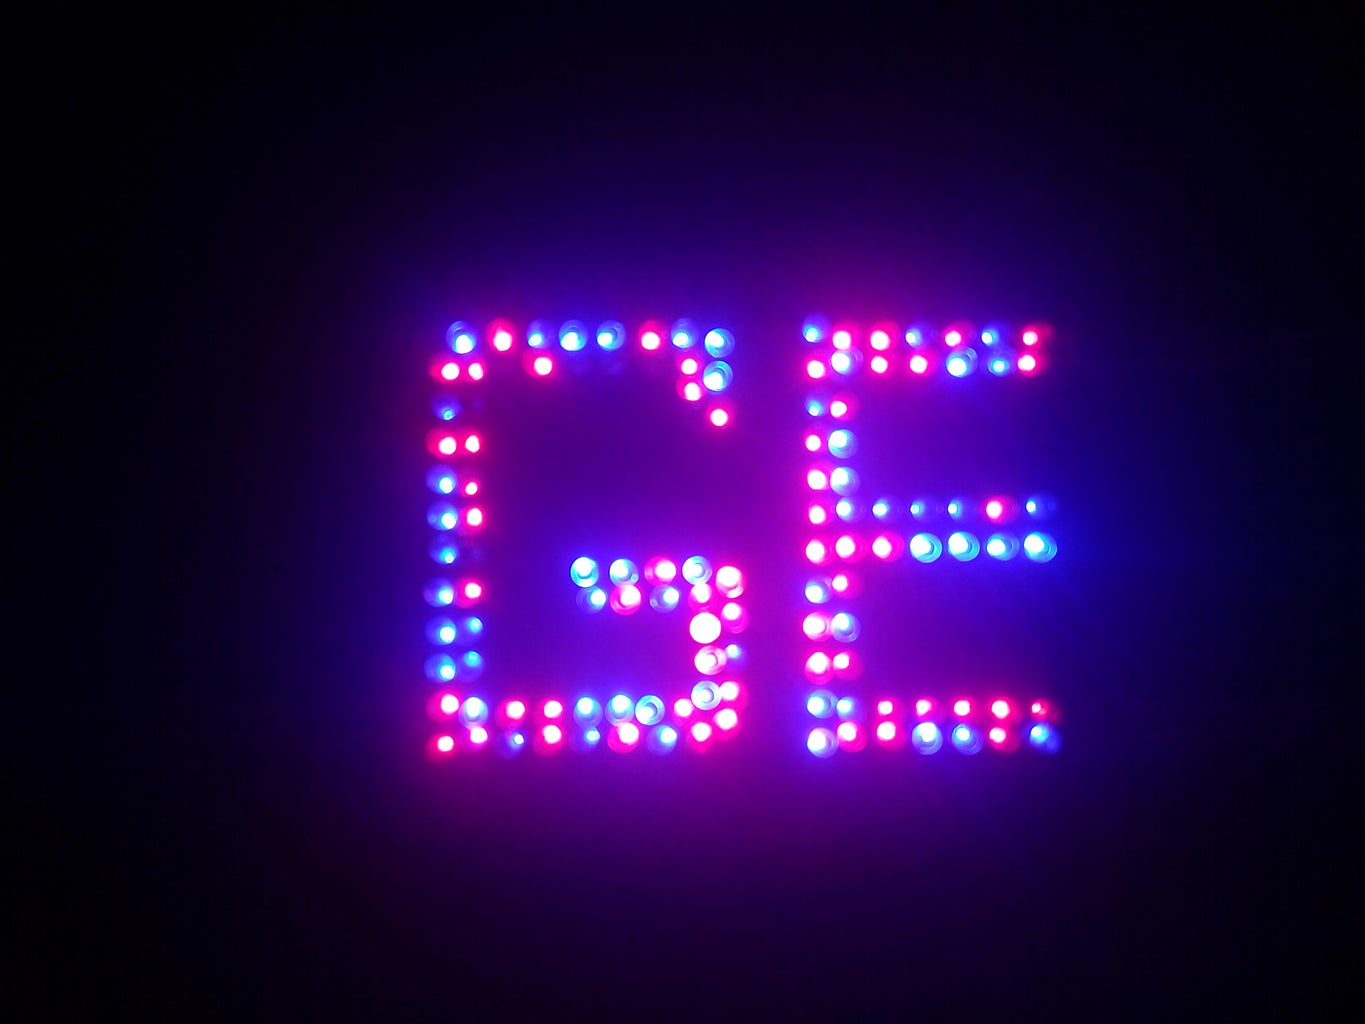 How to Make LED Board   Channel Logo Using Multi Color LEDs